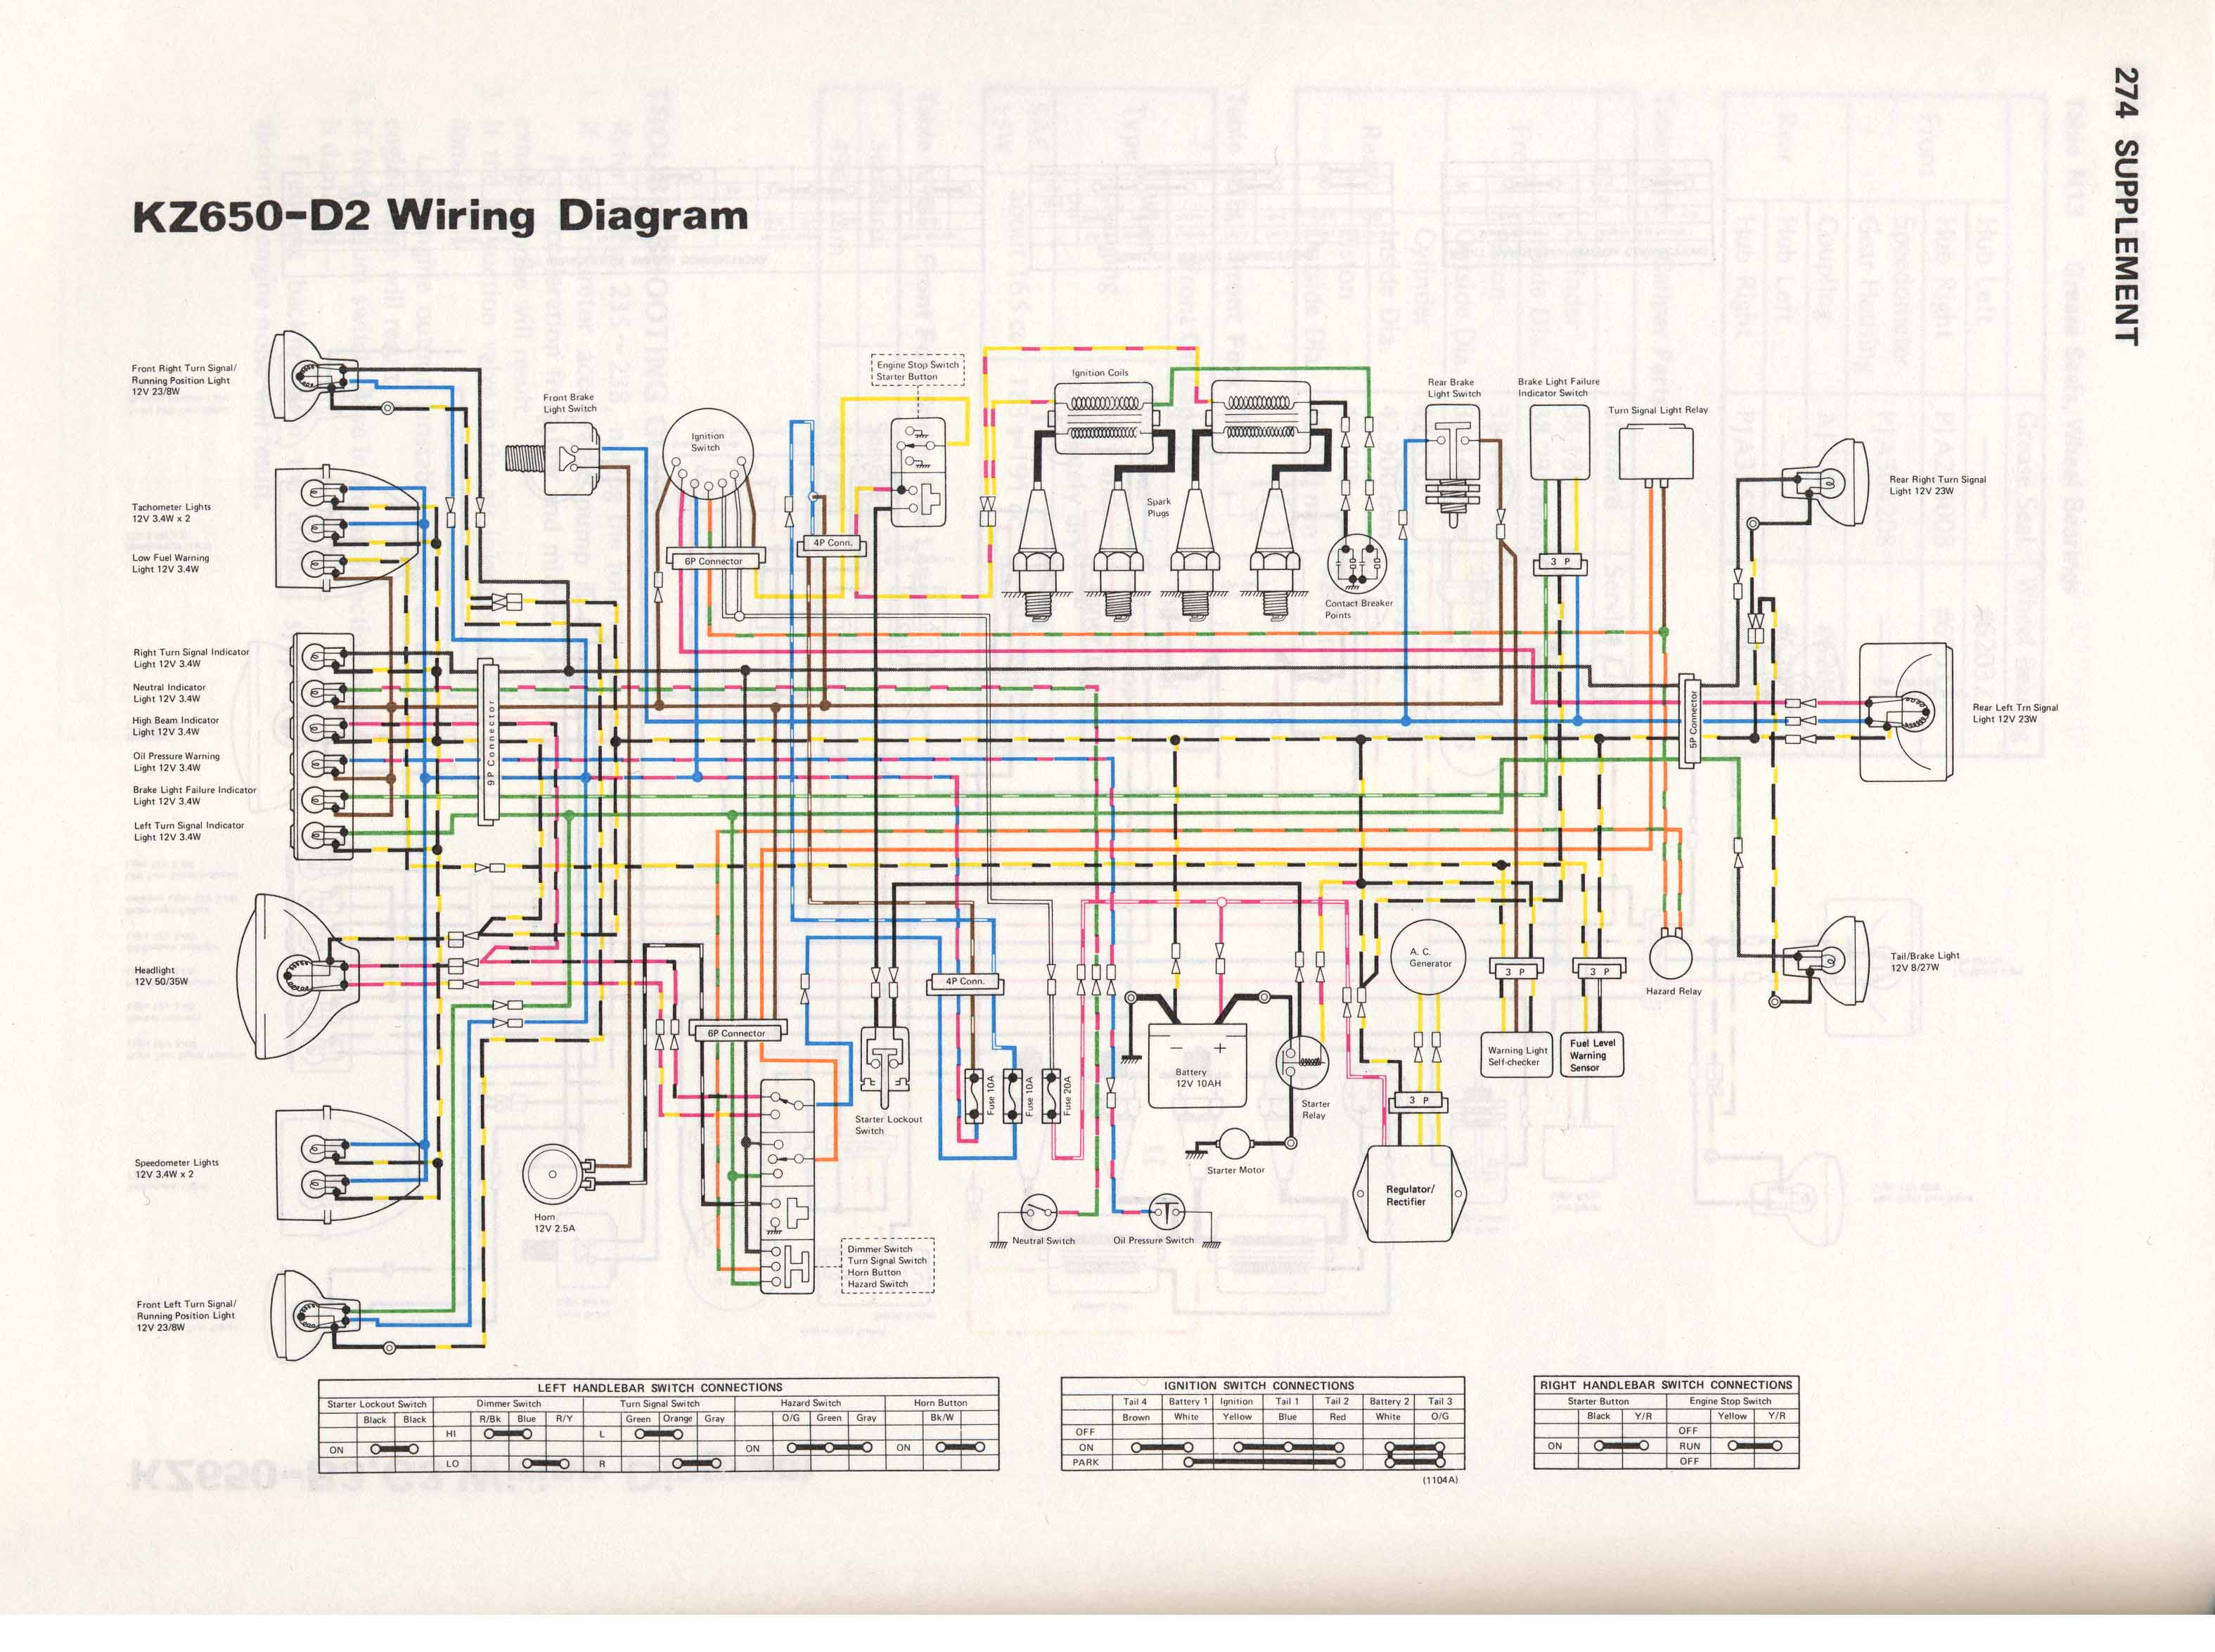 Kz1000 Police Wiring Diagram List Of Schematic Circuit 2001 Kz650 Info Diagrams Rh